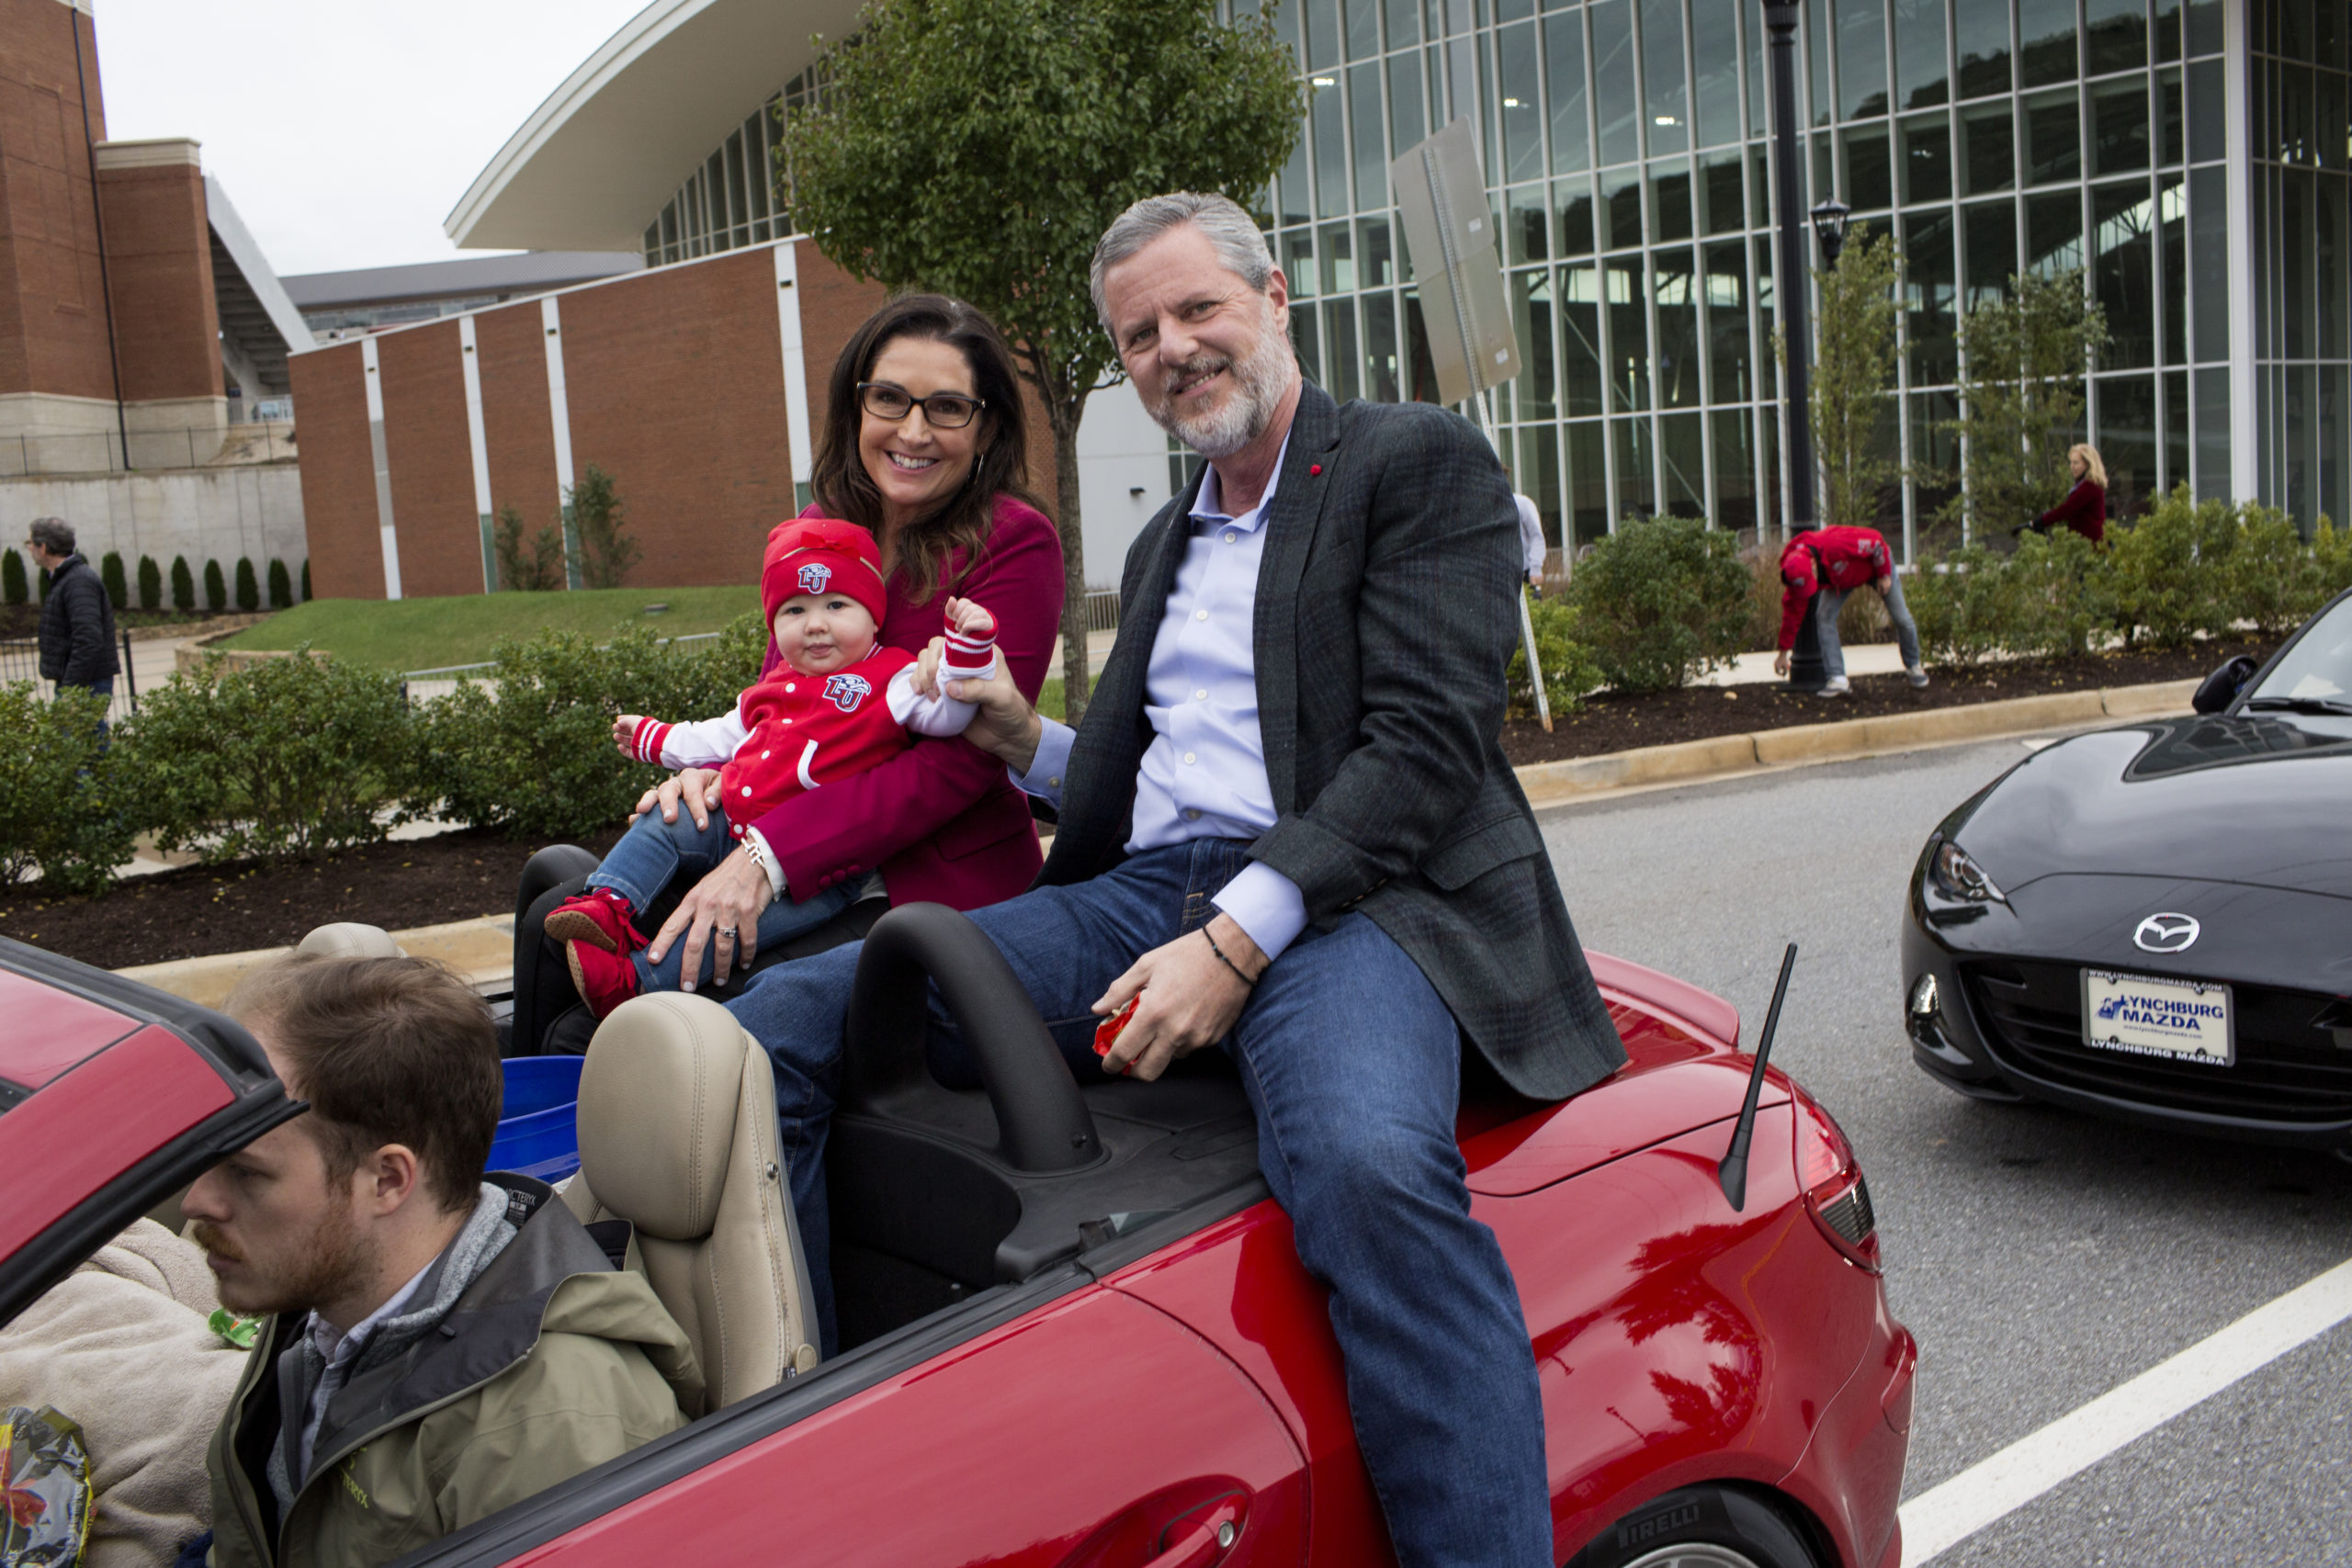 Then-President of Liberty University Jerry Falwell Jr. rides with his wife Becki and a grandchild in the school's annual homecoming weekend parade on October 20, 2018 in Lynchburg, Virginia.